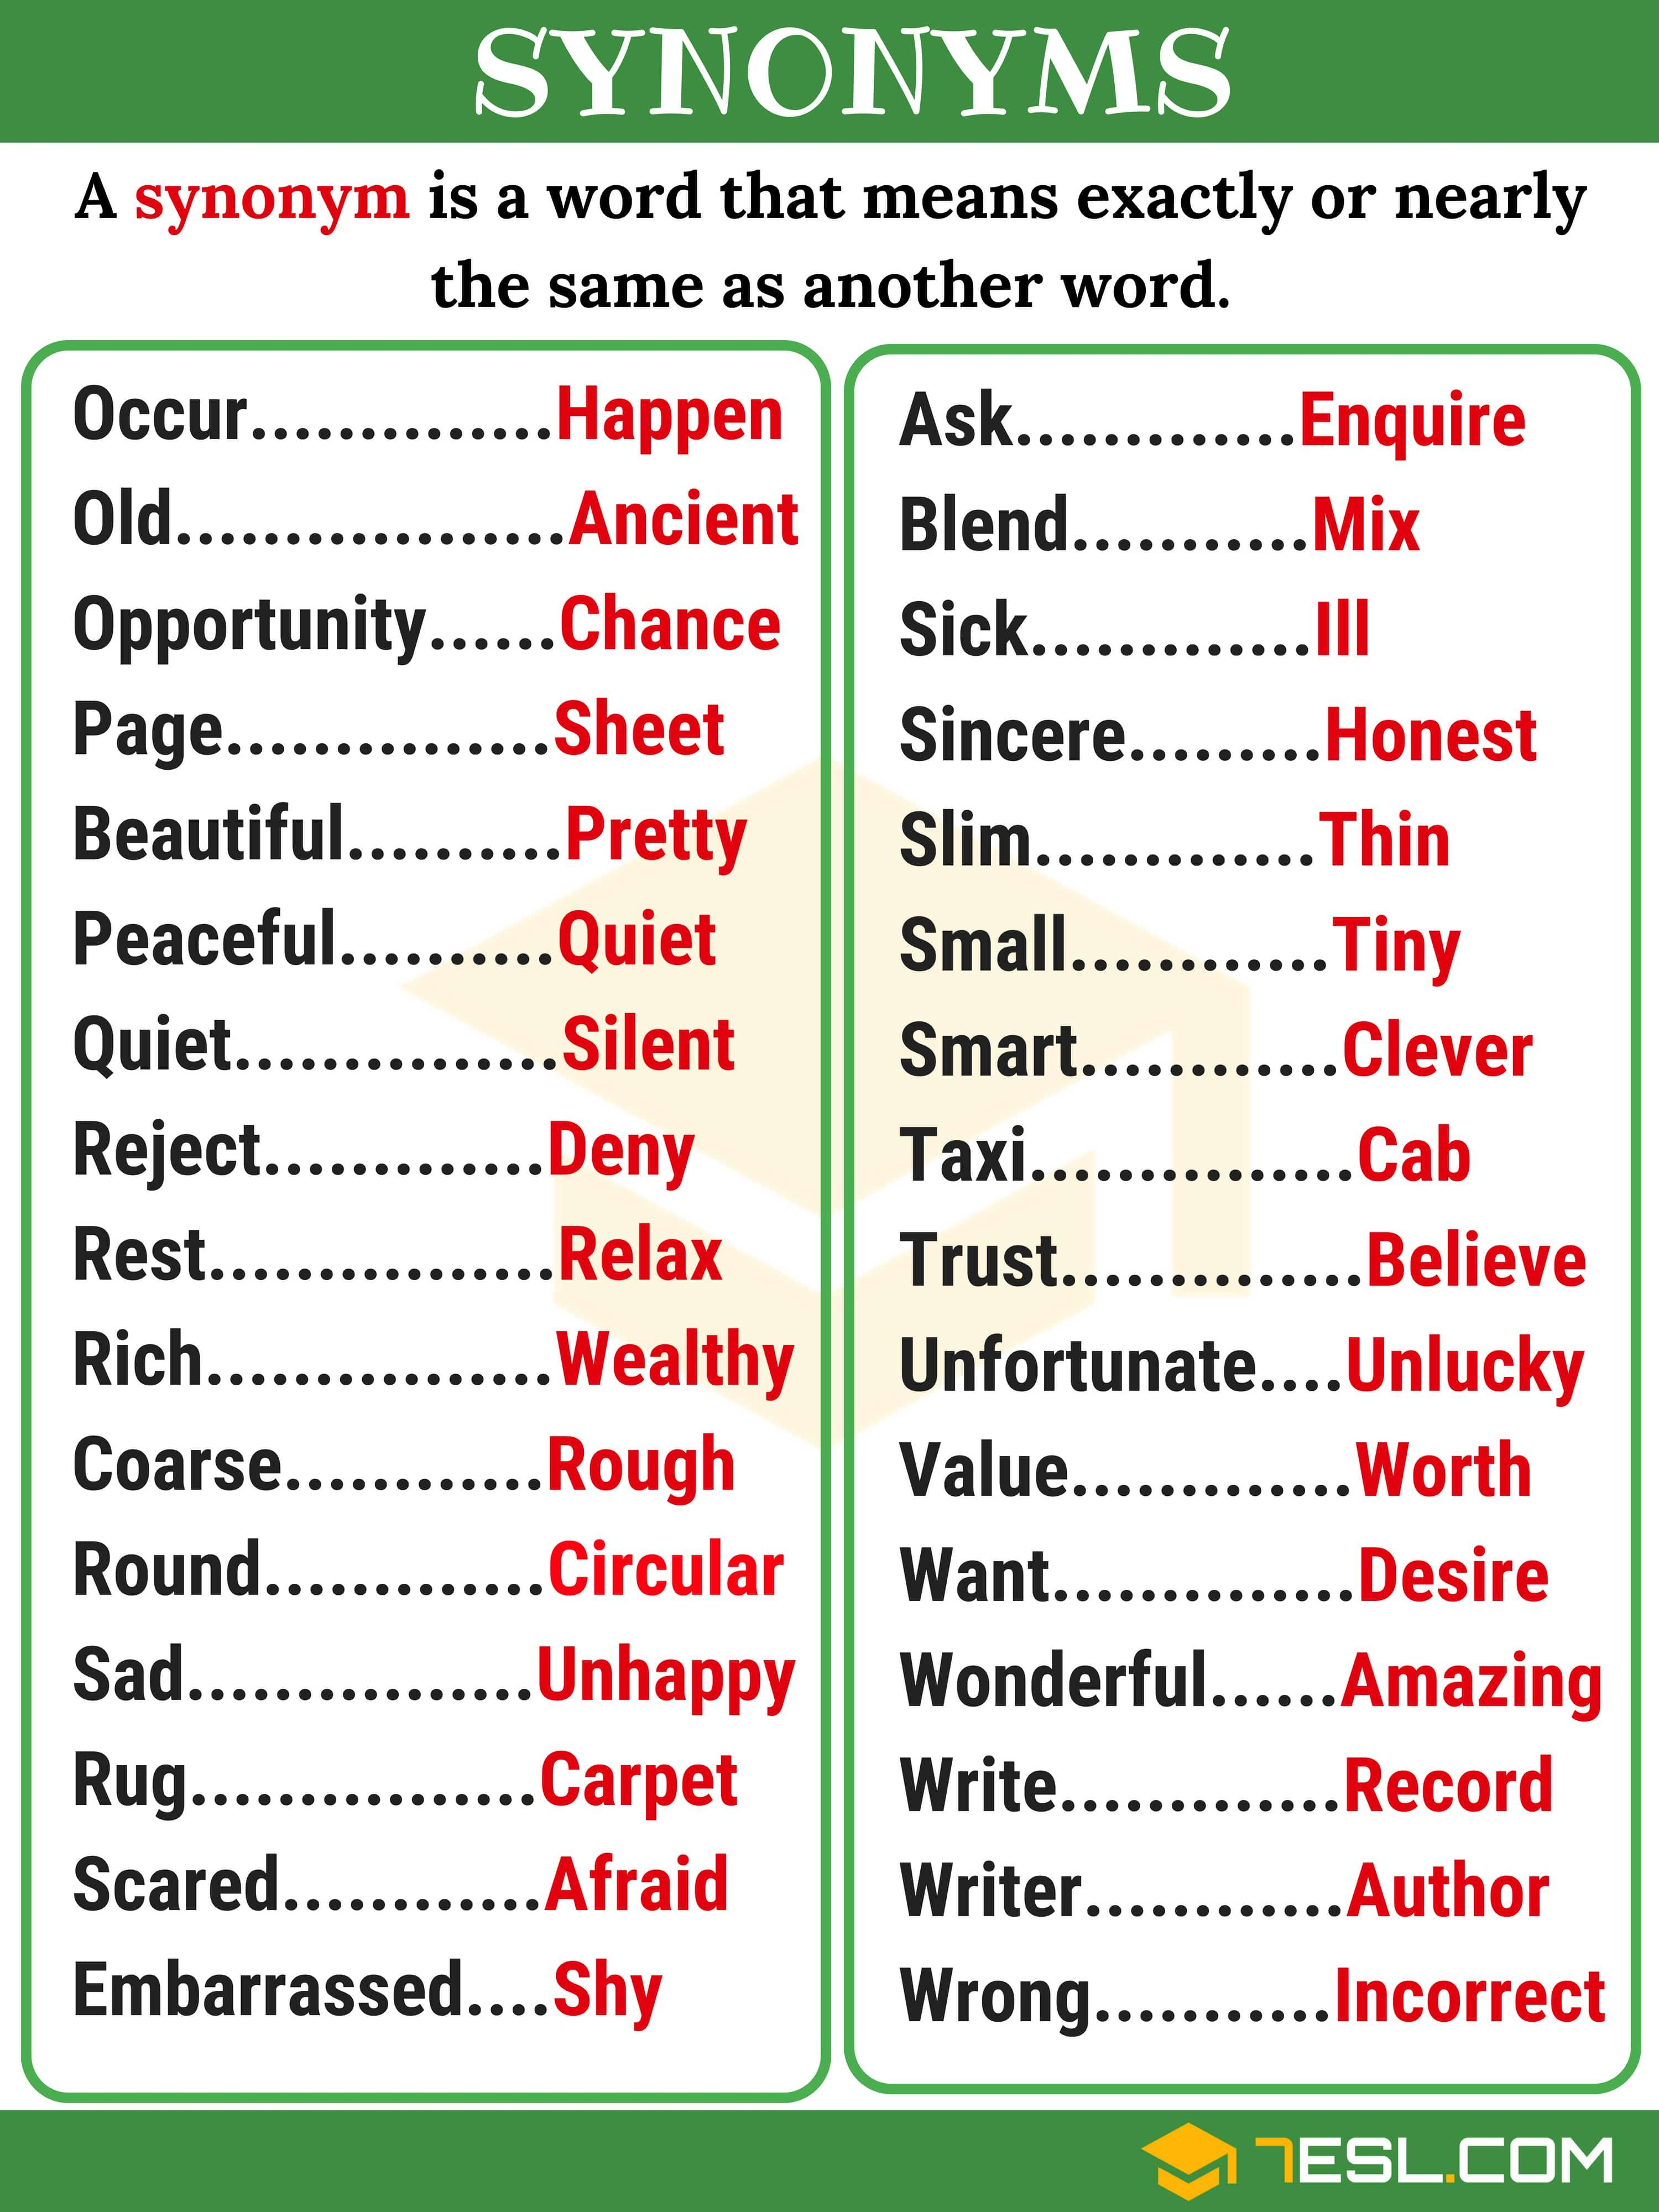 Another Word For To Do List New List Of 250 Synonyms In English From Az With Examples  English .